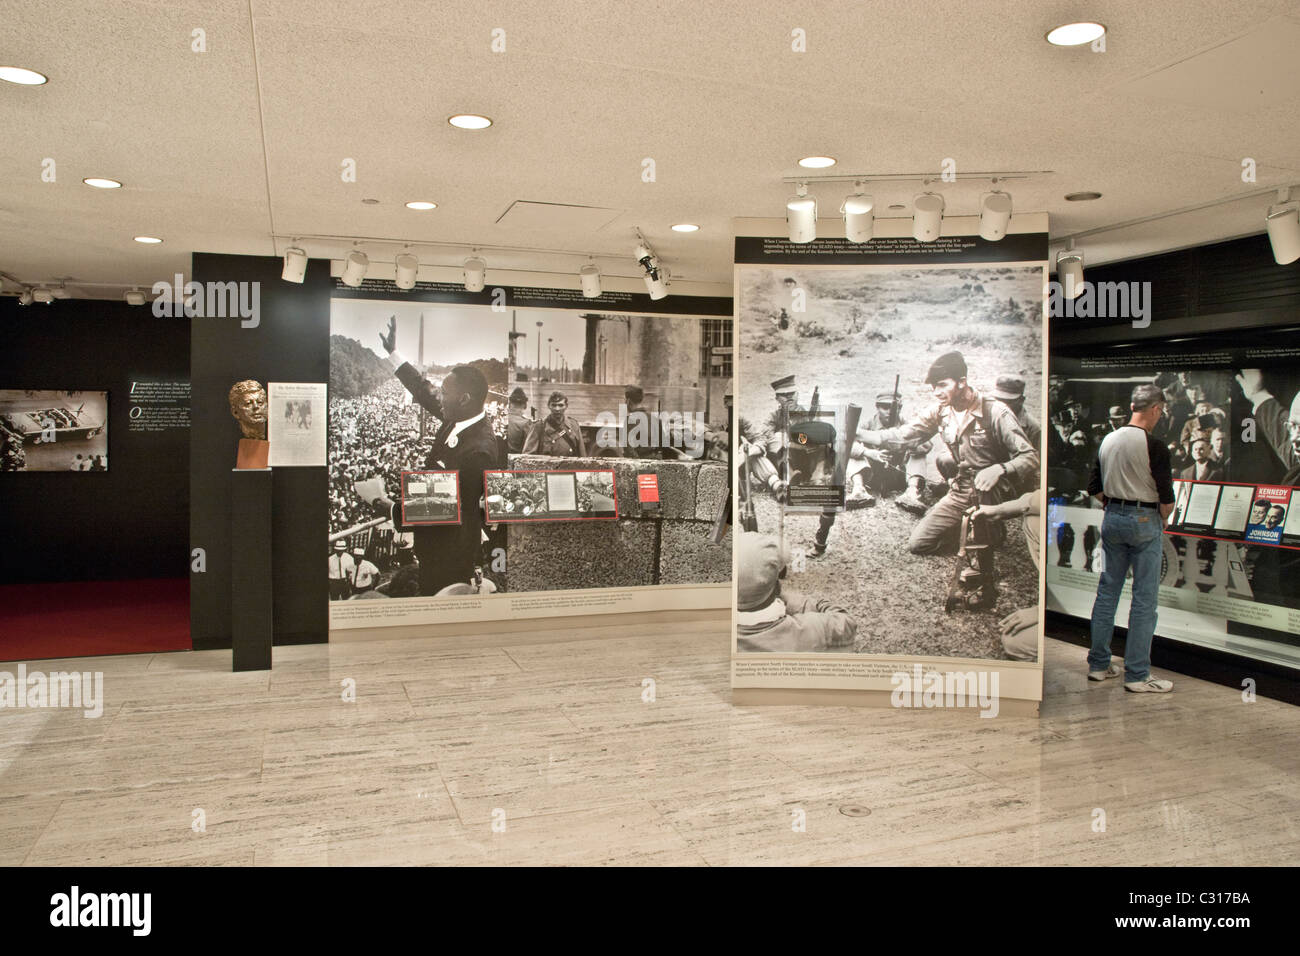 History of the 1960's, 'LBJ' Library & Museum' Stock Photo